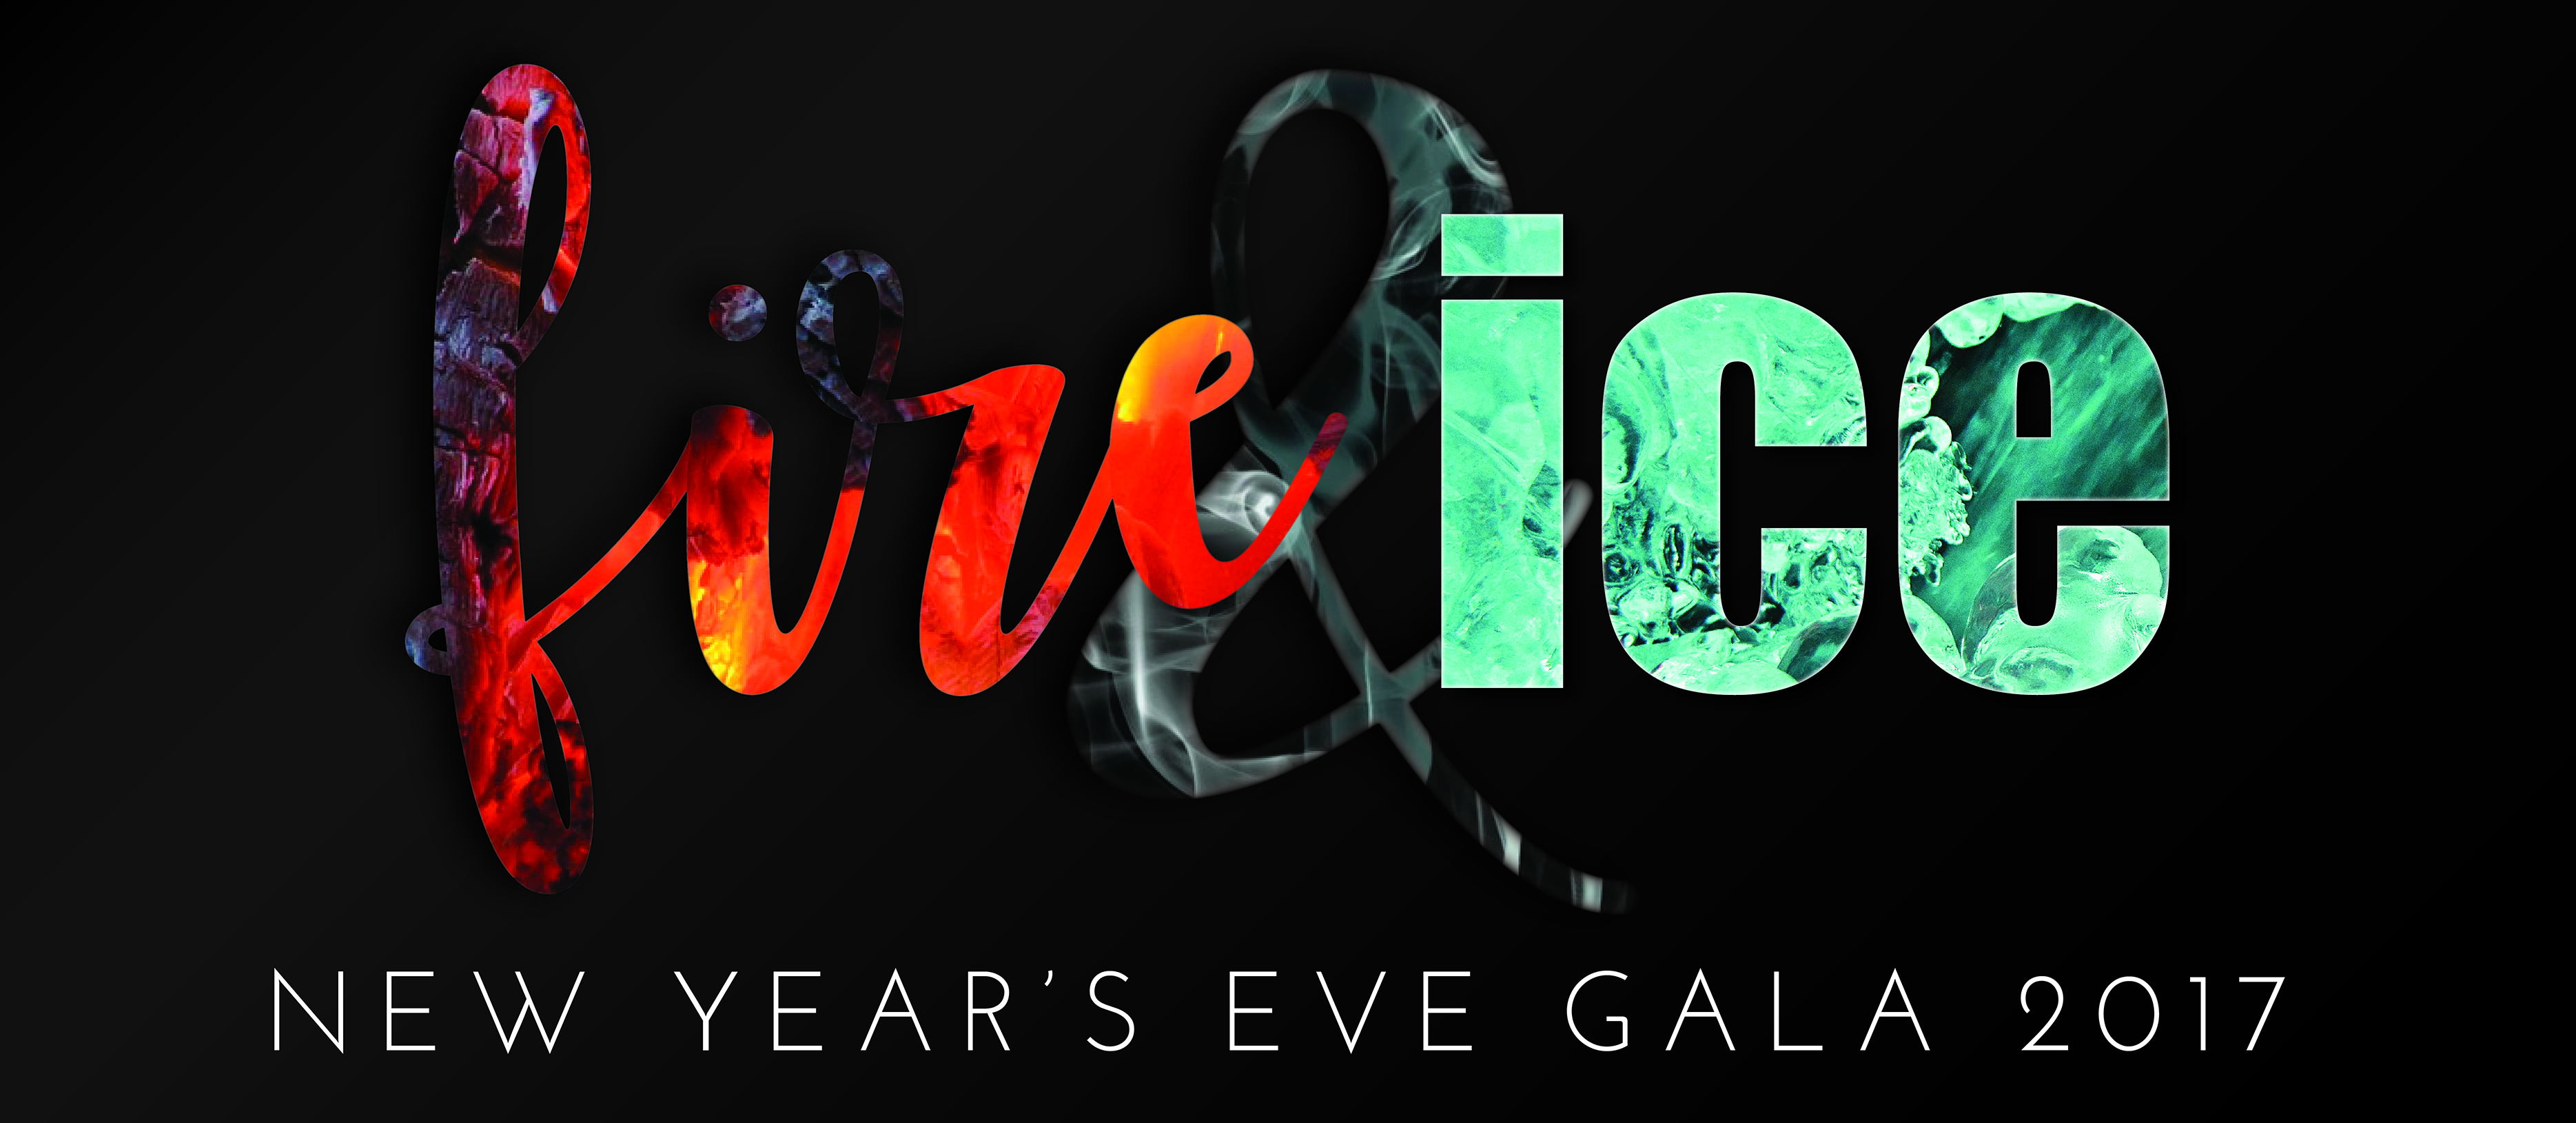 Fire and Ice New Year's Eve Gala